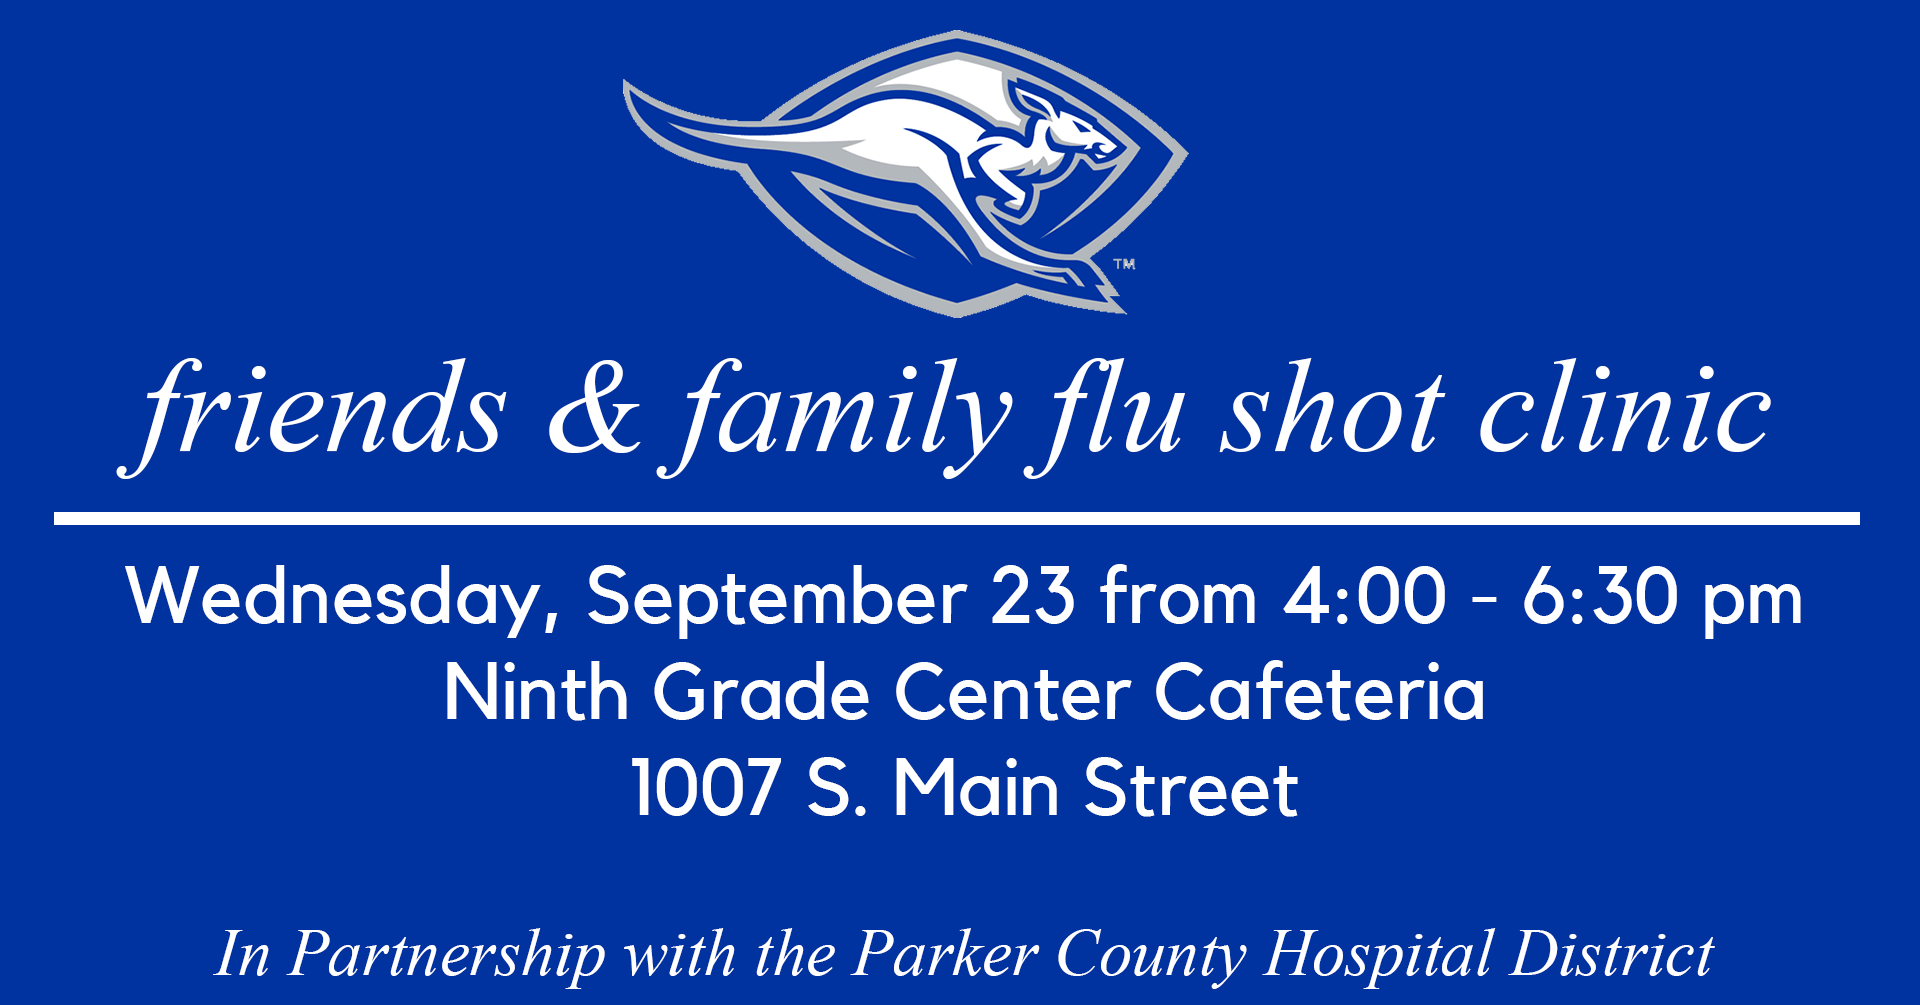 WISD friends & family flu shot clinic image | September 23 from 4-6:30 at the Ninth Grade Center Cafeteria